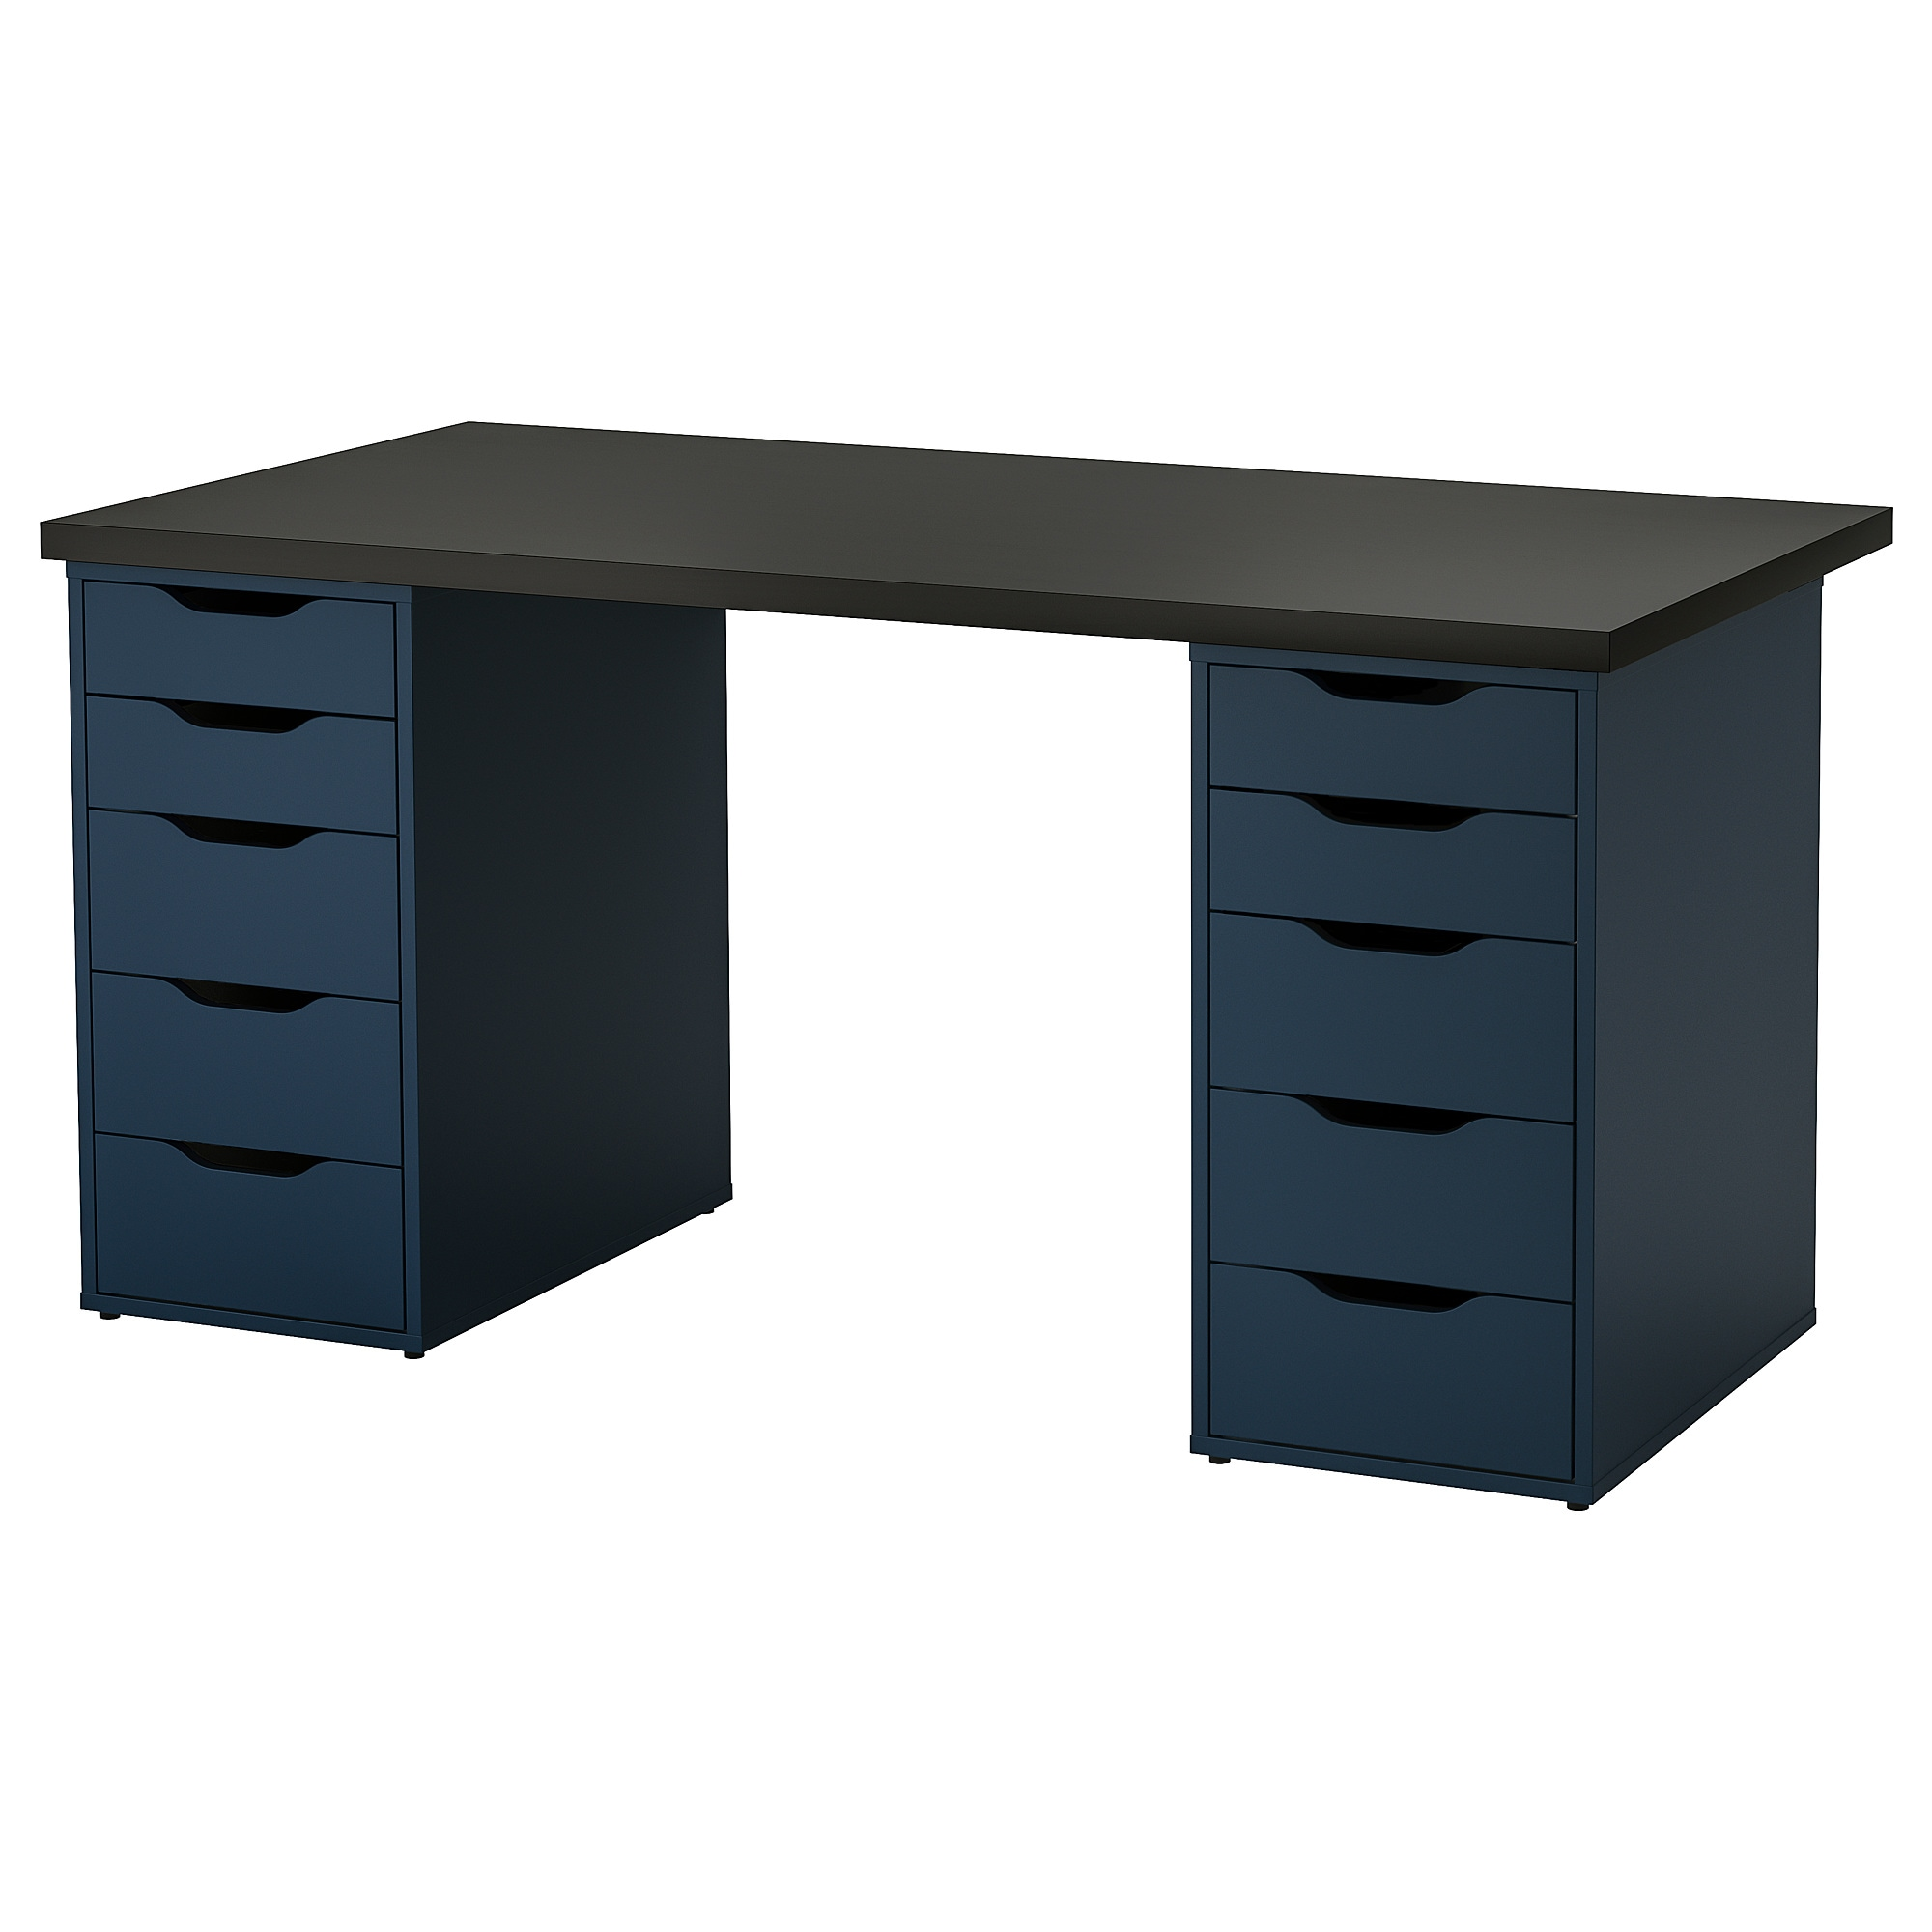 Linnmon Alex Table Black Brown Blue Ikea